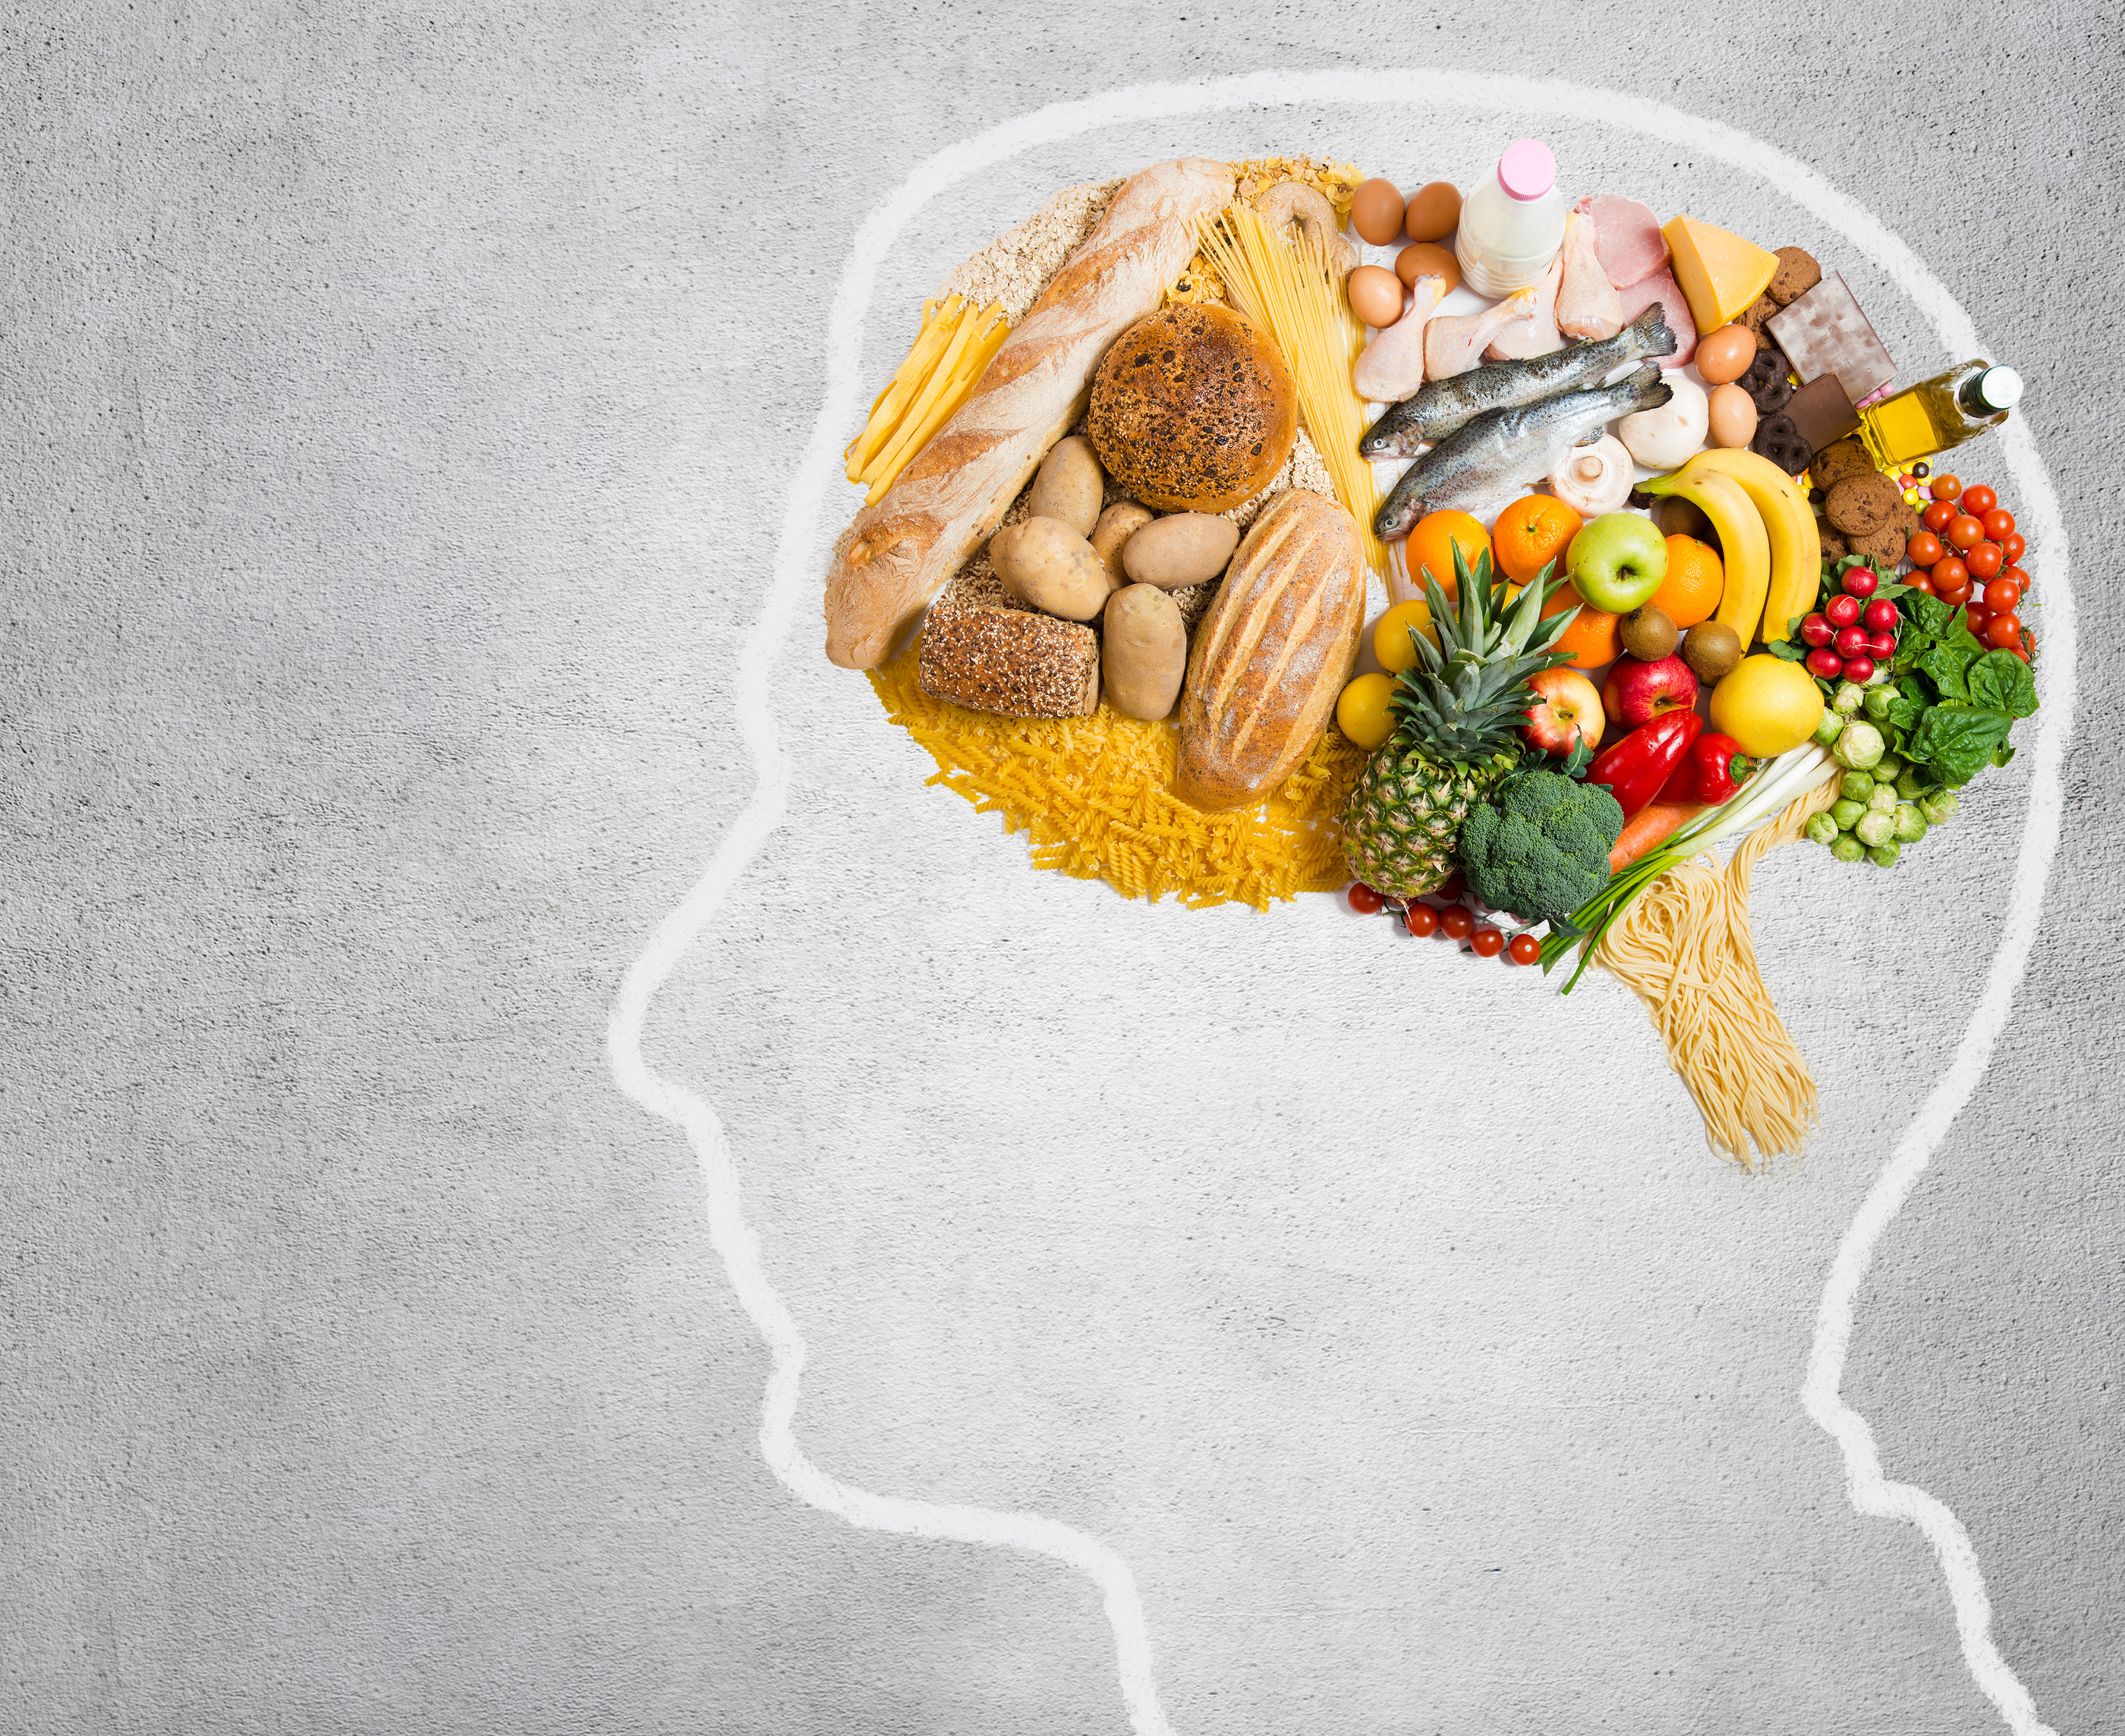 Nutritional Psychiatry Your Brain On Food  Harvard Health Blog  Nutritional Psychiatry Your Brain On Food  Harvard Health Blog  Harvard  Health Publishing